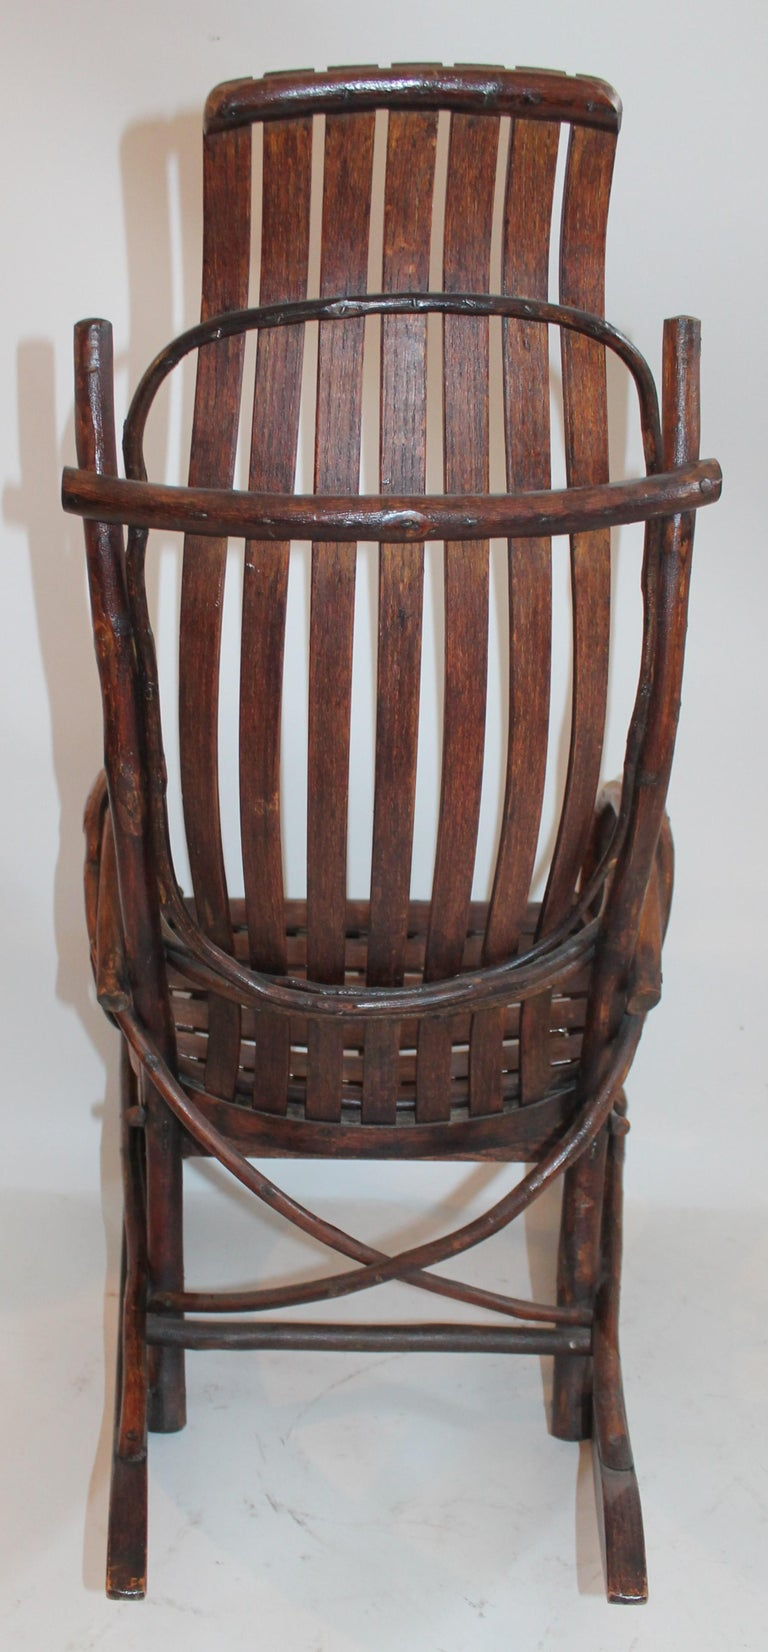 Amish Bent Wood Child's Rocking Chair In Excellent Condition For Sale In Los Angeles, CA